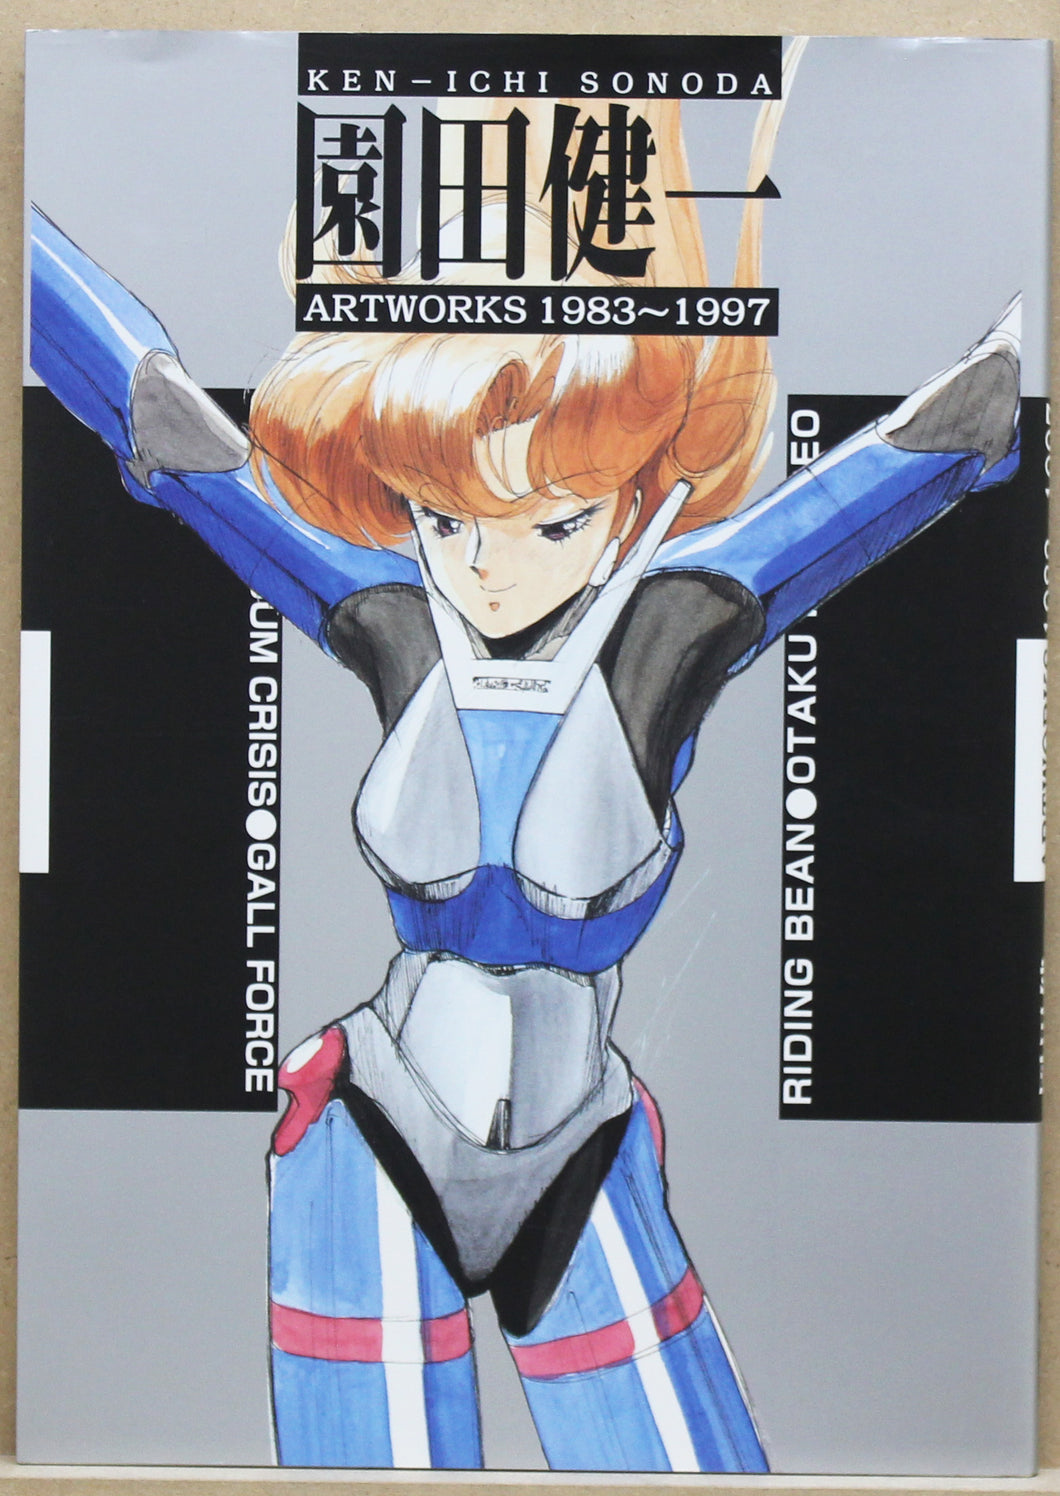 Ken-Ichi Sonoda Artworks 1983 to 1997